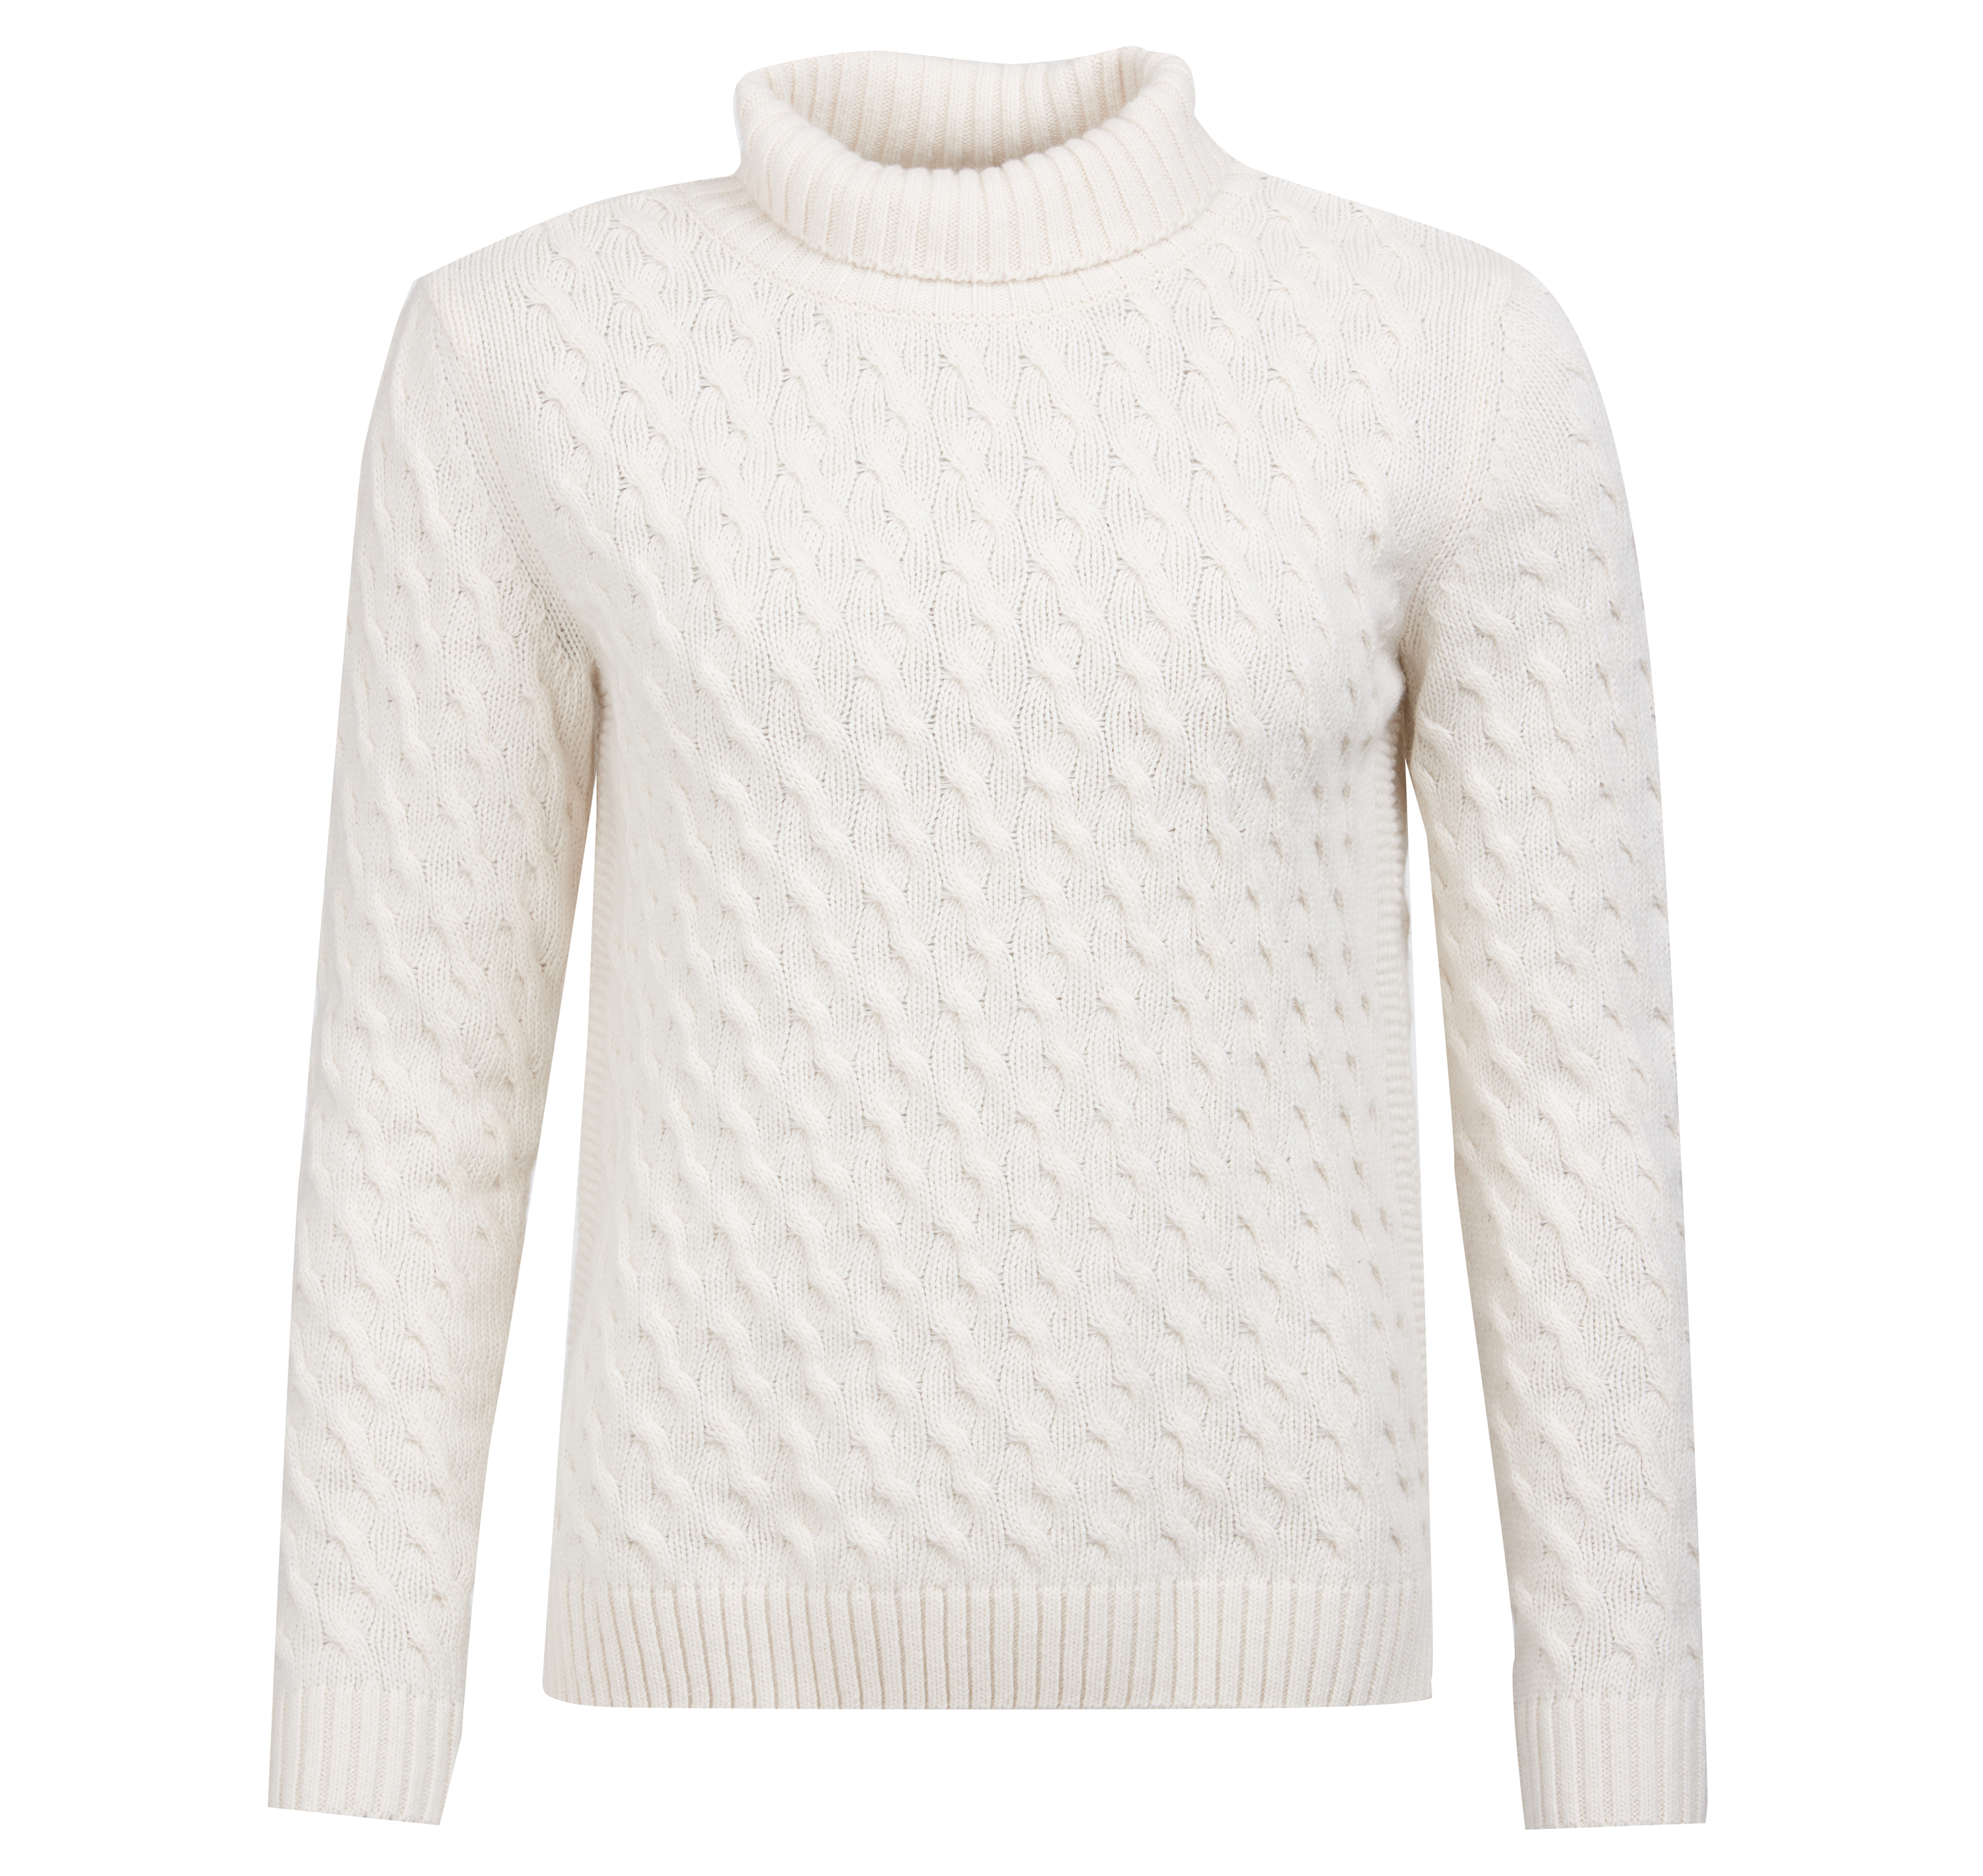 Barbour Barbour Burne Knit White Relaxed Fit